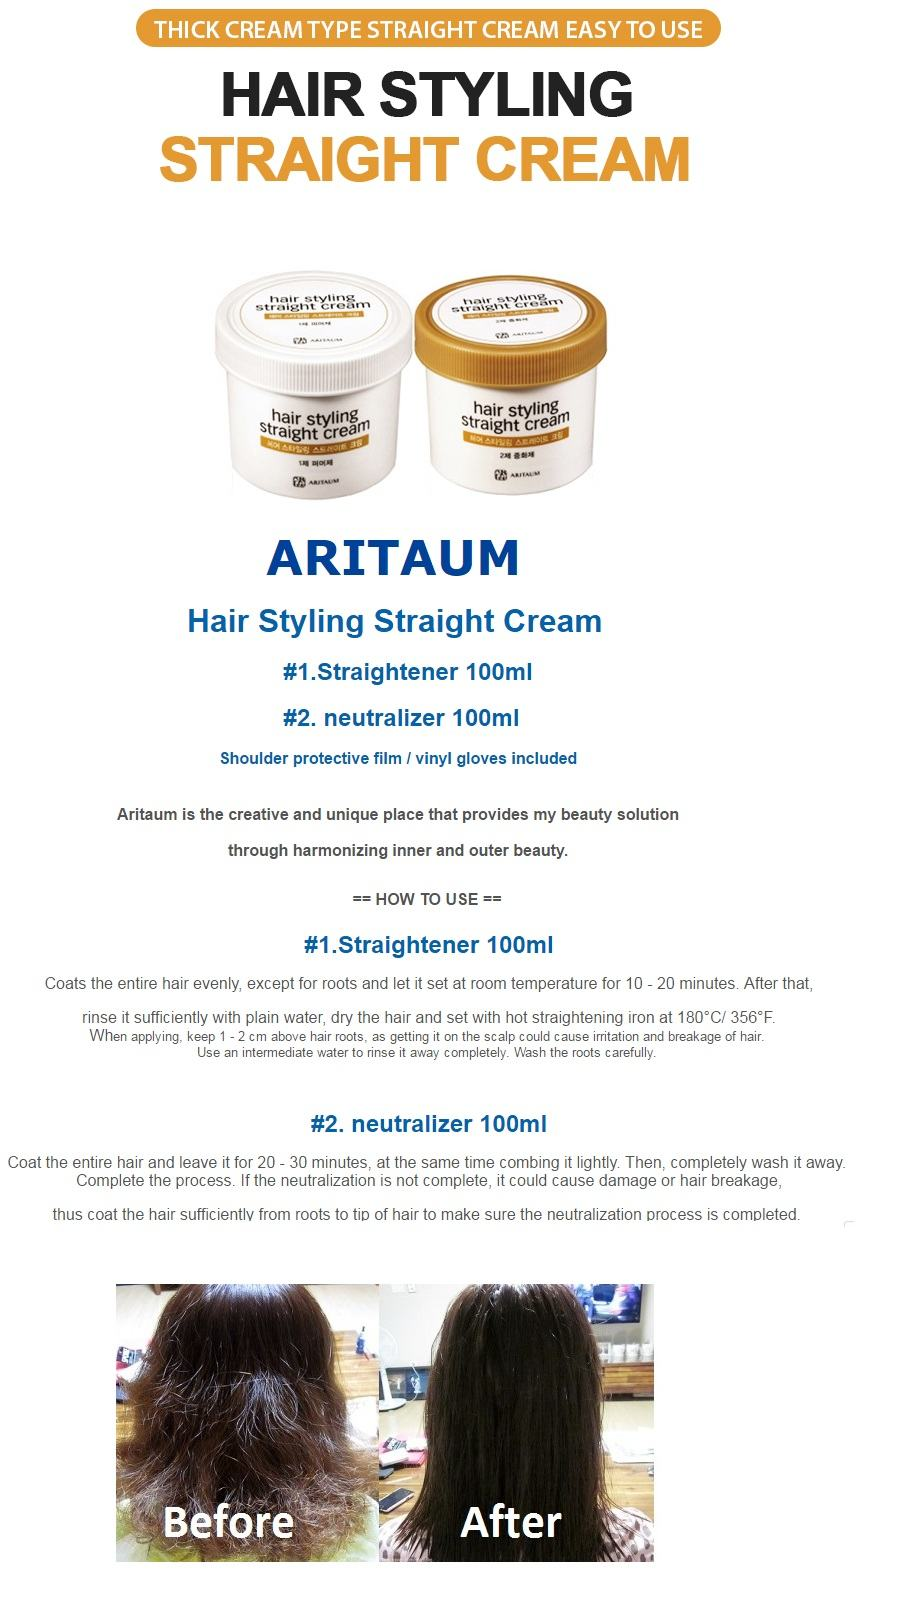 ARITAUM Hair Styling Straight Cream 100ml